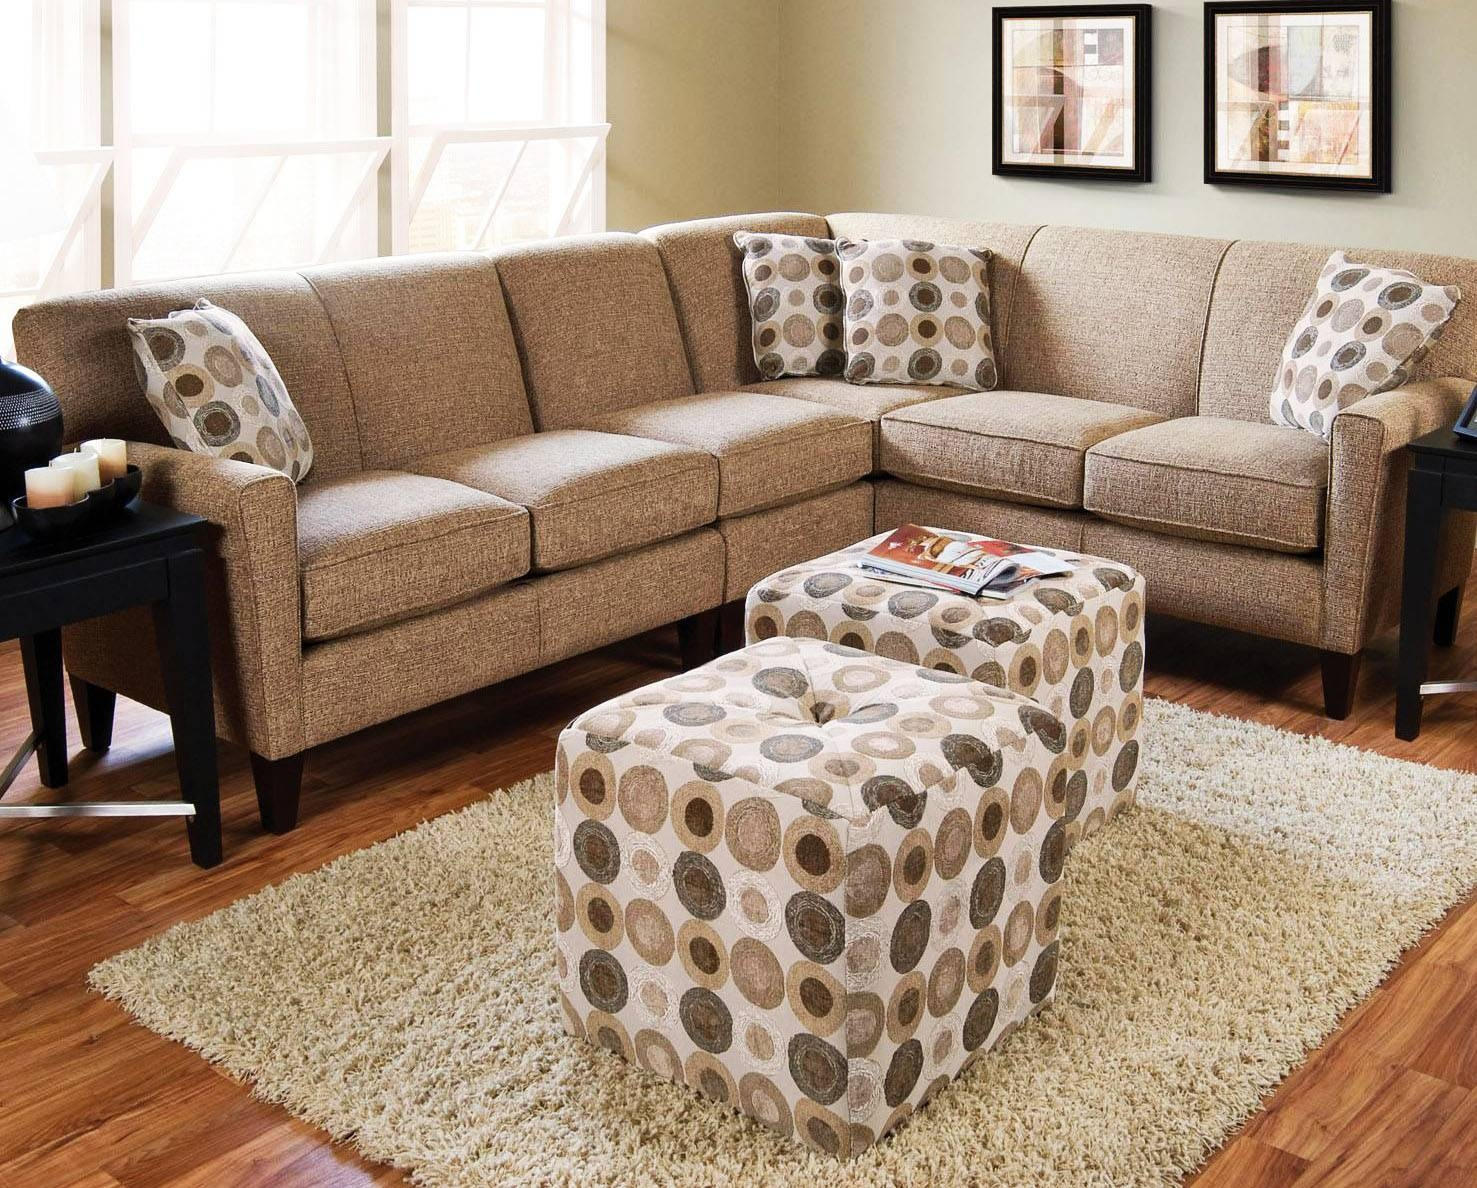 How To Choose Sectional Sofas For Small Spaces | Homefurniture within Small Sectional Sofas For Small Spaces (Image 13 of 25)